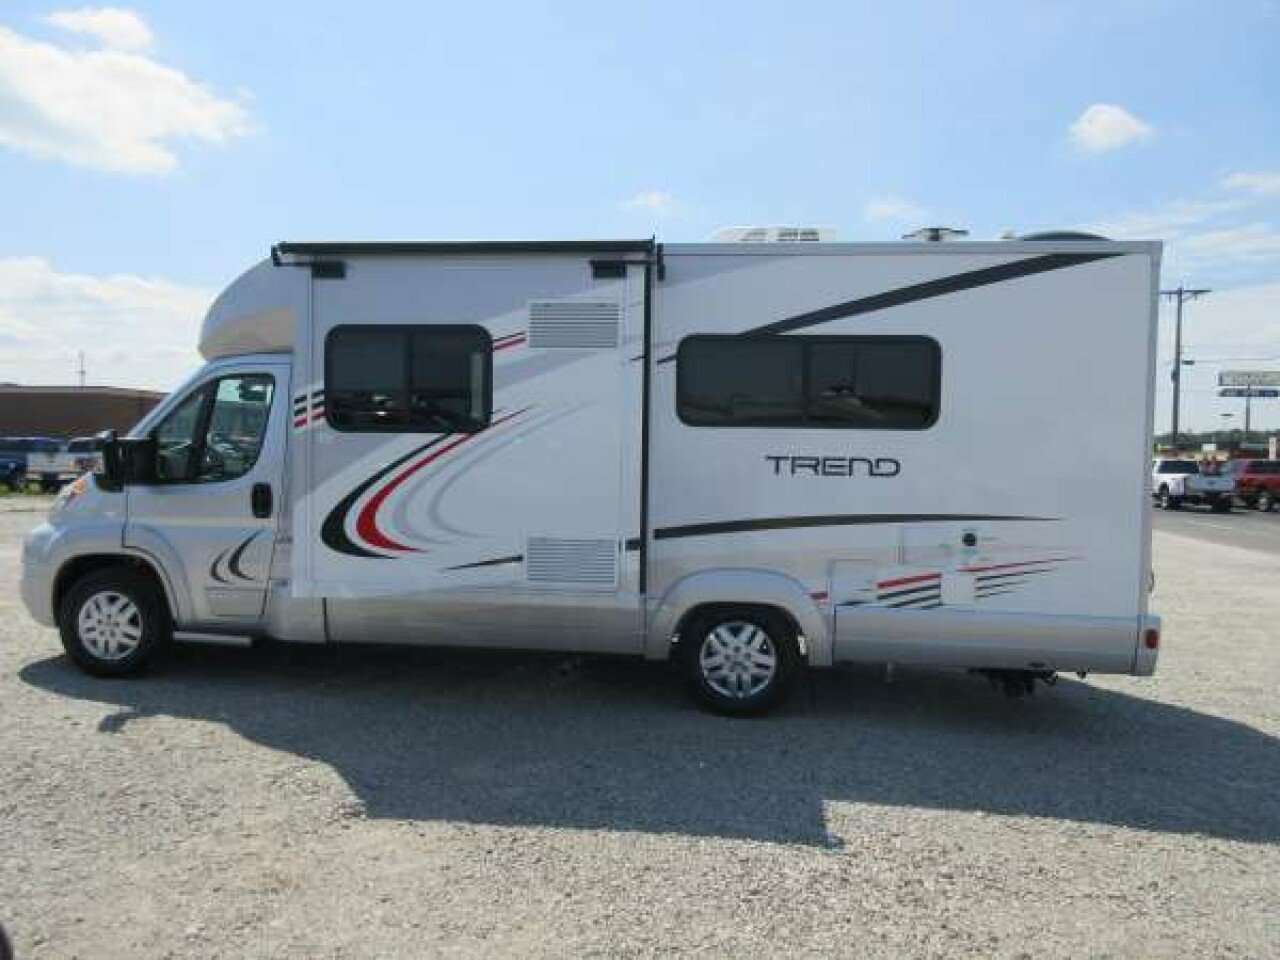 2018 Winnebago Trend For Sale Near Auburn Indiana 46706